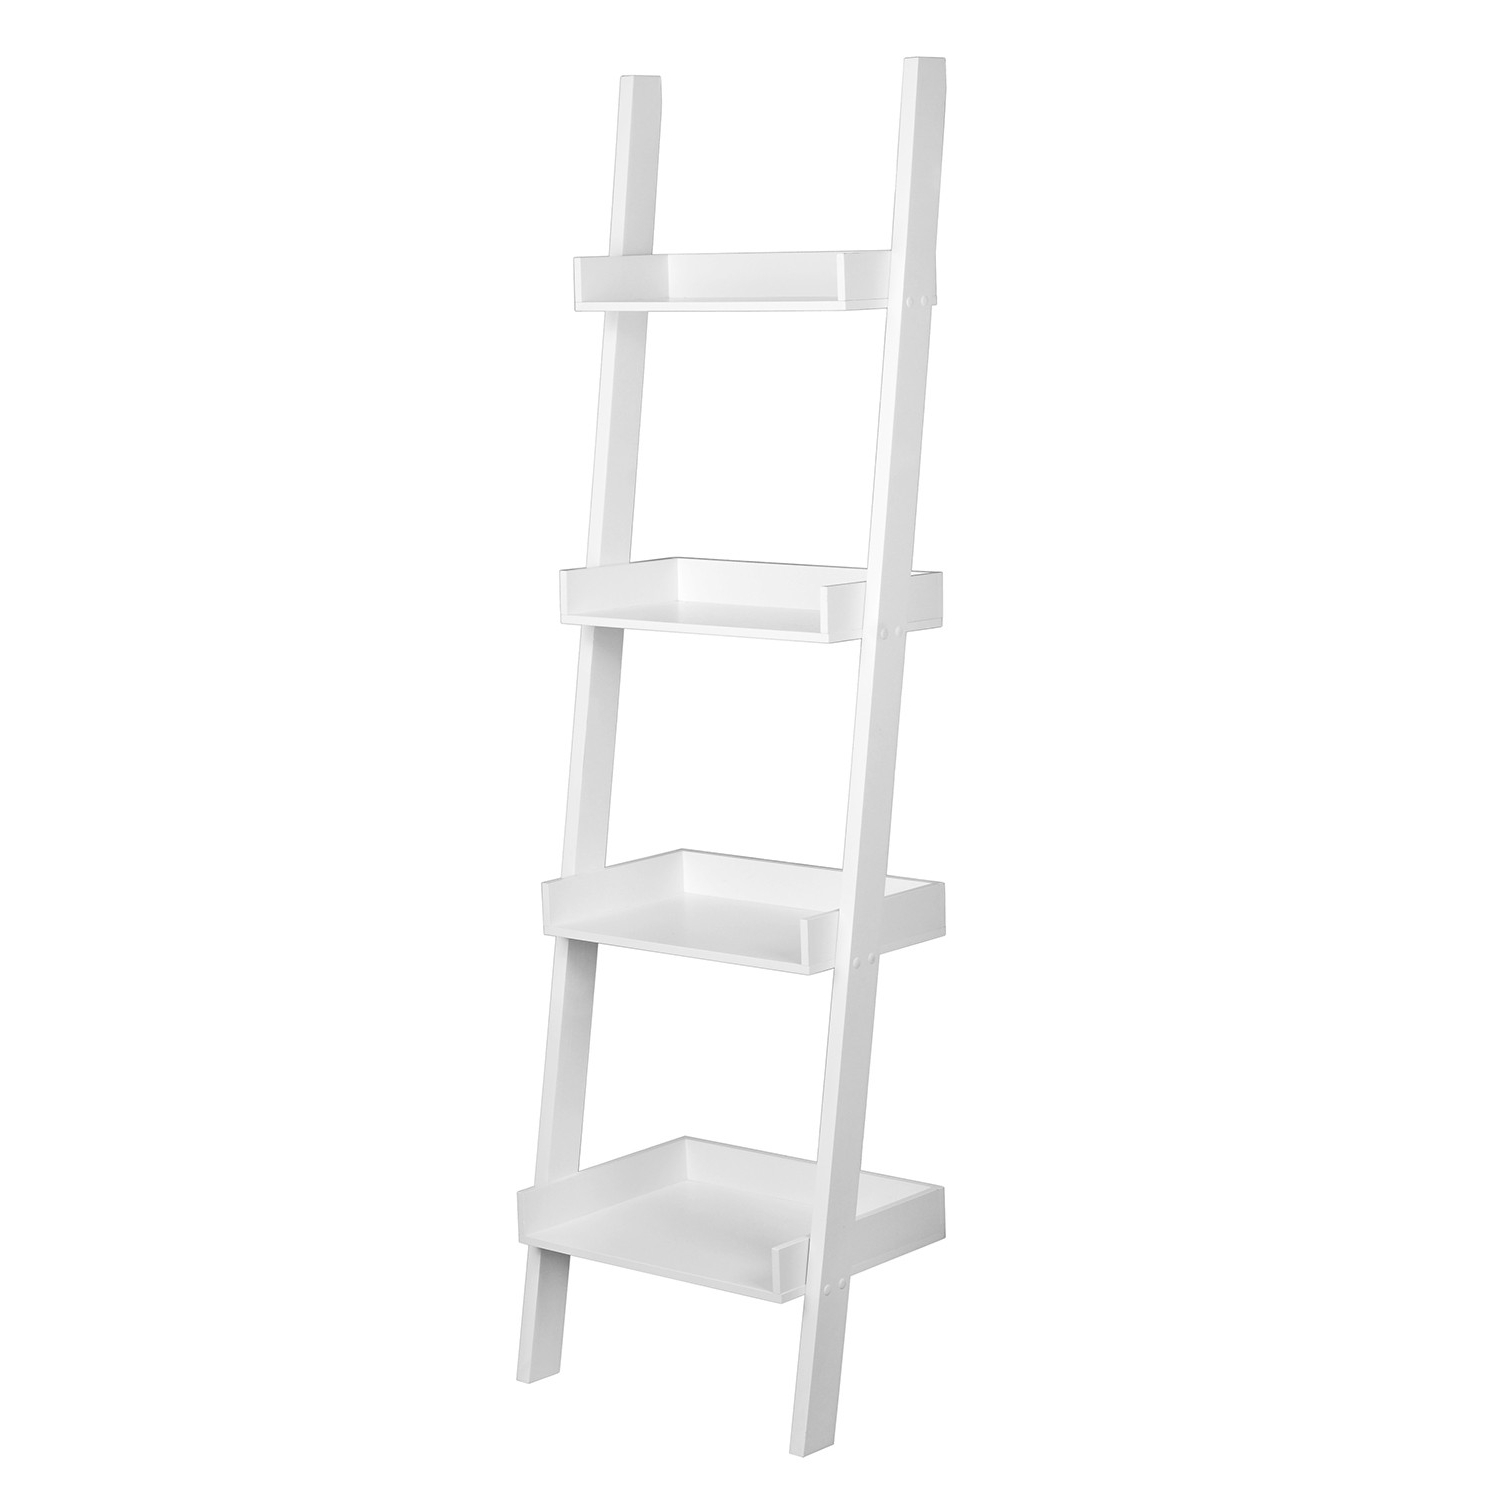 Four Tier White Ladder Bookcase Shelf Intended For Fashionable Narrow Ladder Bookcases (View 6 of 20)